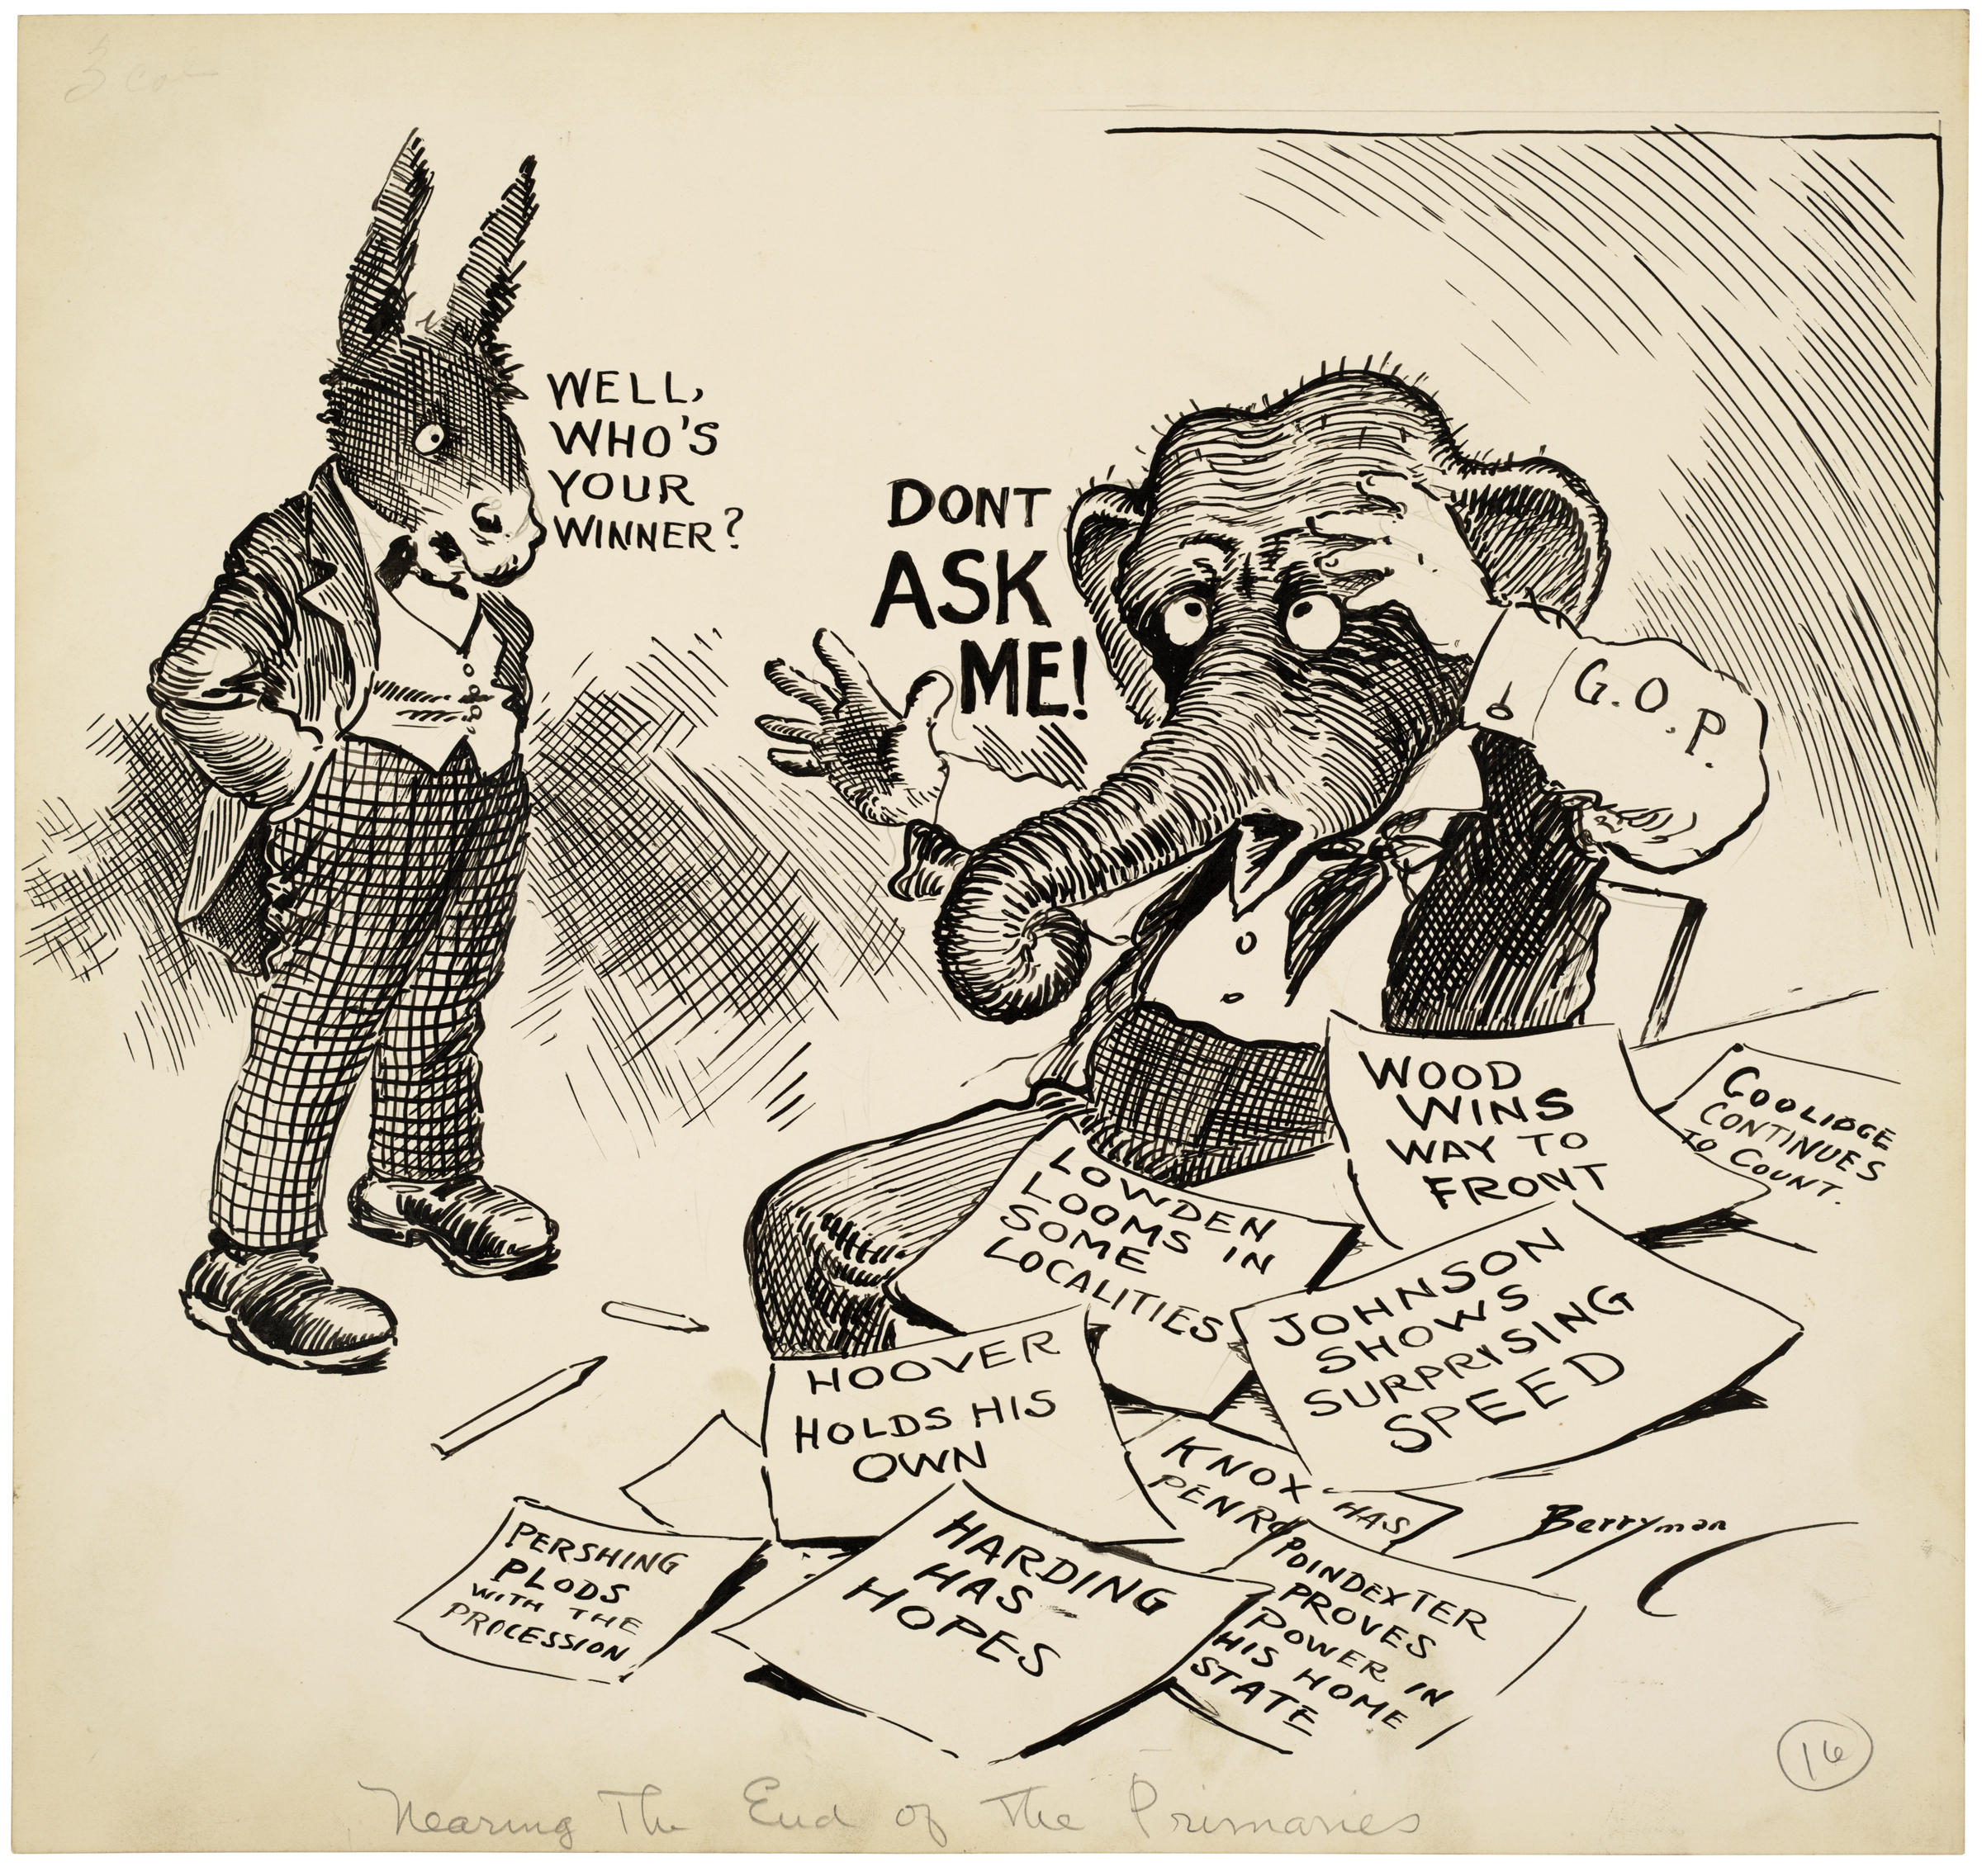 Political Cartoon from 1920 featuring the donkey and elephant.